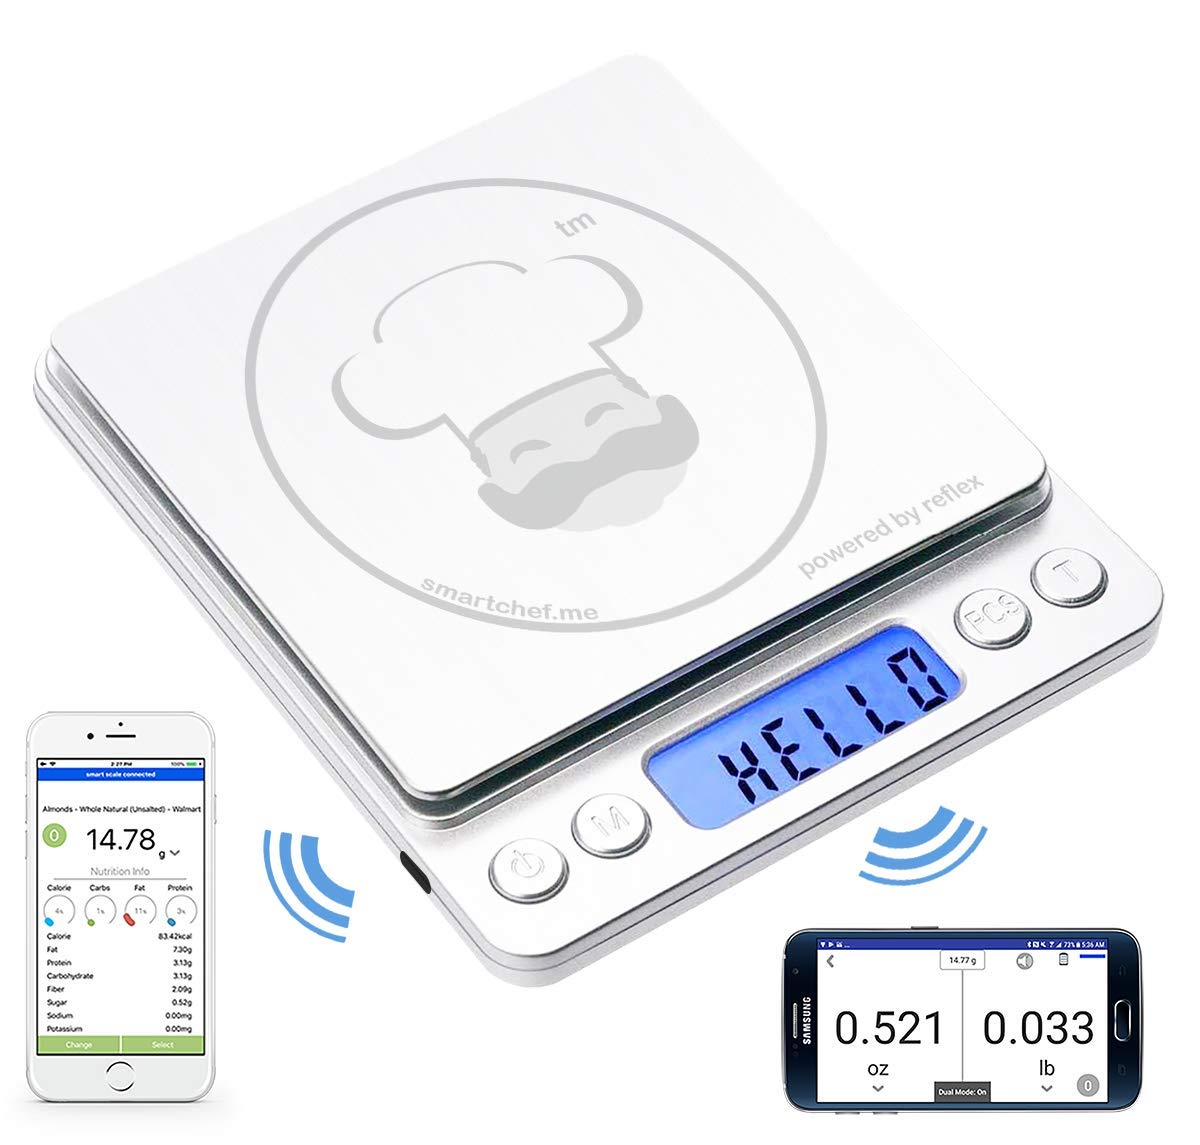 reflex 500g / 0.01g Digital Pocket Bluetooth smart food kitchen Scale grams and ounces USB rechargeable, portable, accurate, metal stainless steel surface, nutritional keto calculator, baking, counter